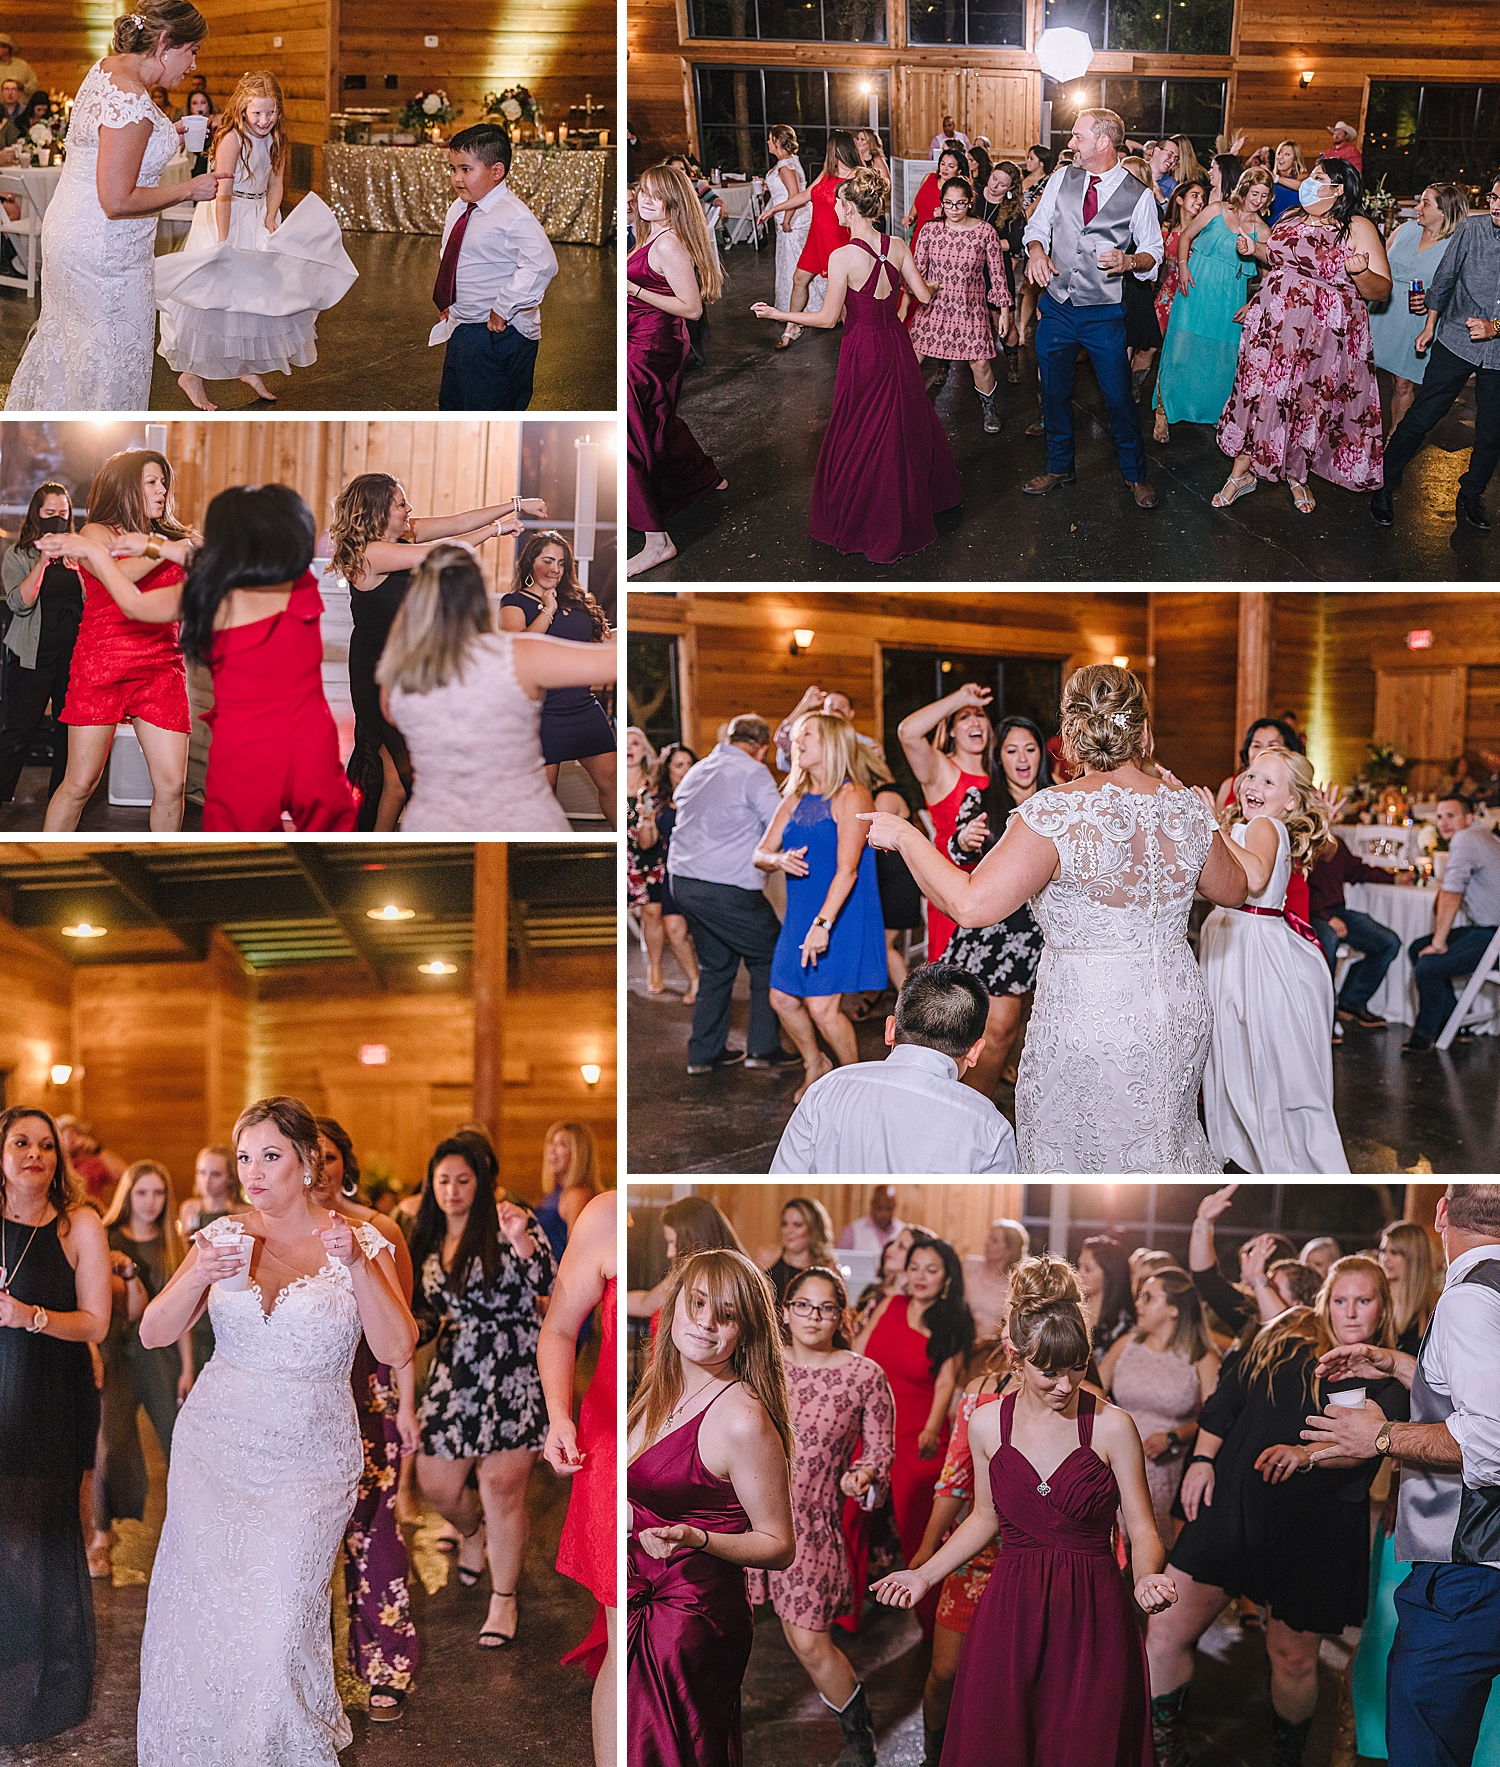 Geronimo-Oaks-Wedding-Venue-Seguin-Texas-Elegant-Navy-Burgundy-Wedding-Carly-Barton-Photography_0094.jpg